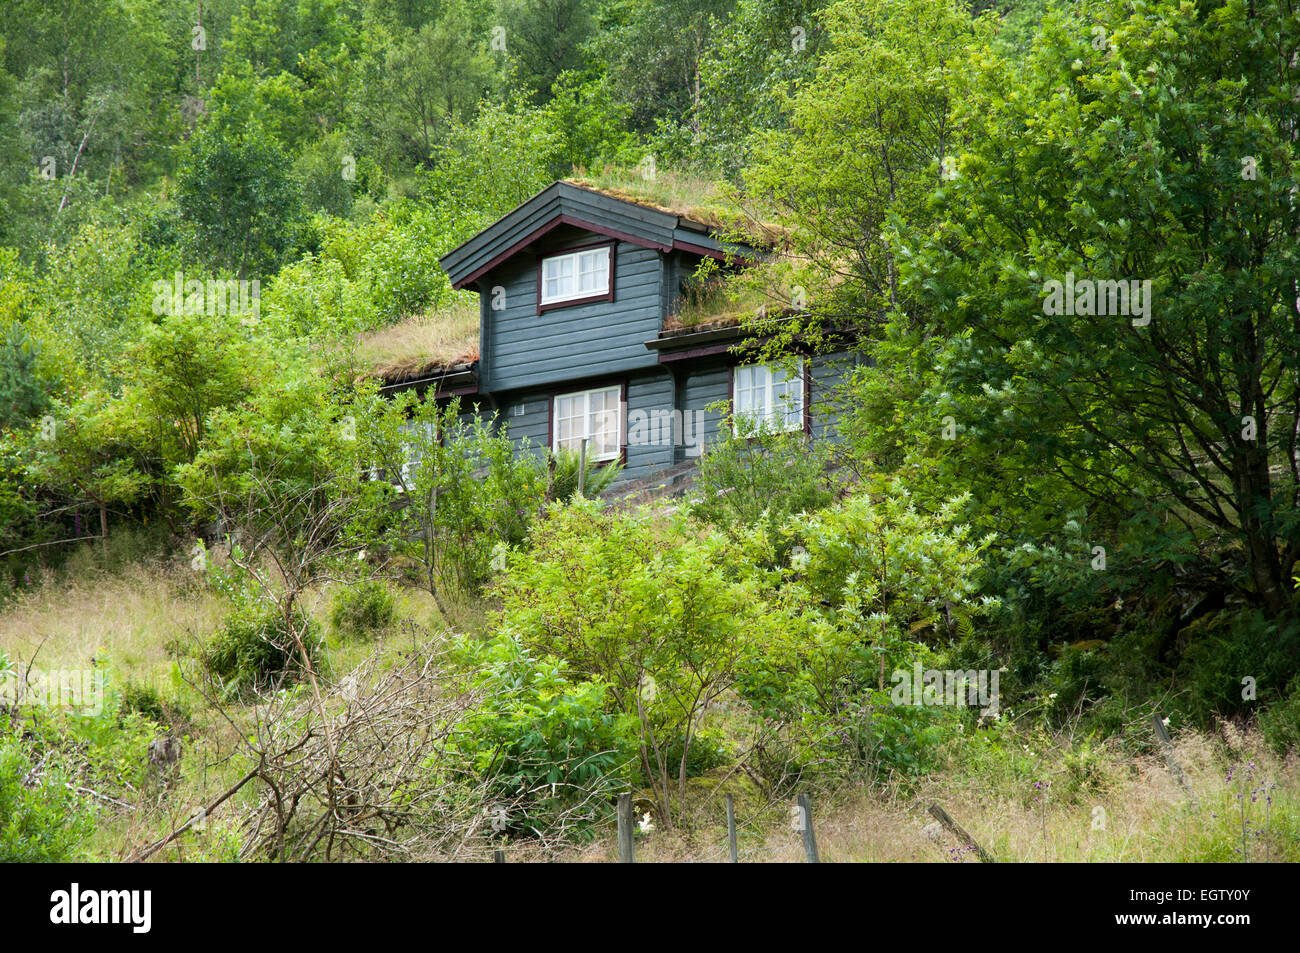 A holiday home in Olden at the end of Nordfjord in Norway.  Ferienhaus in Olden am Ende des Nordjords in Norwegen. - Stock Image